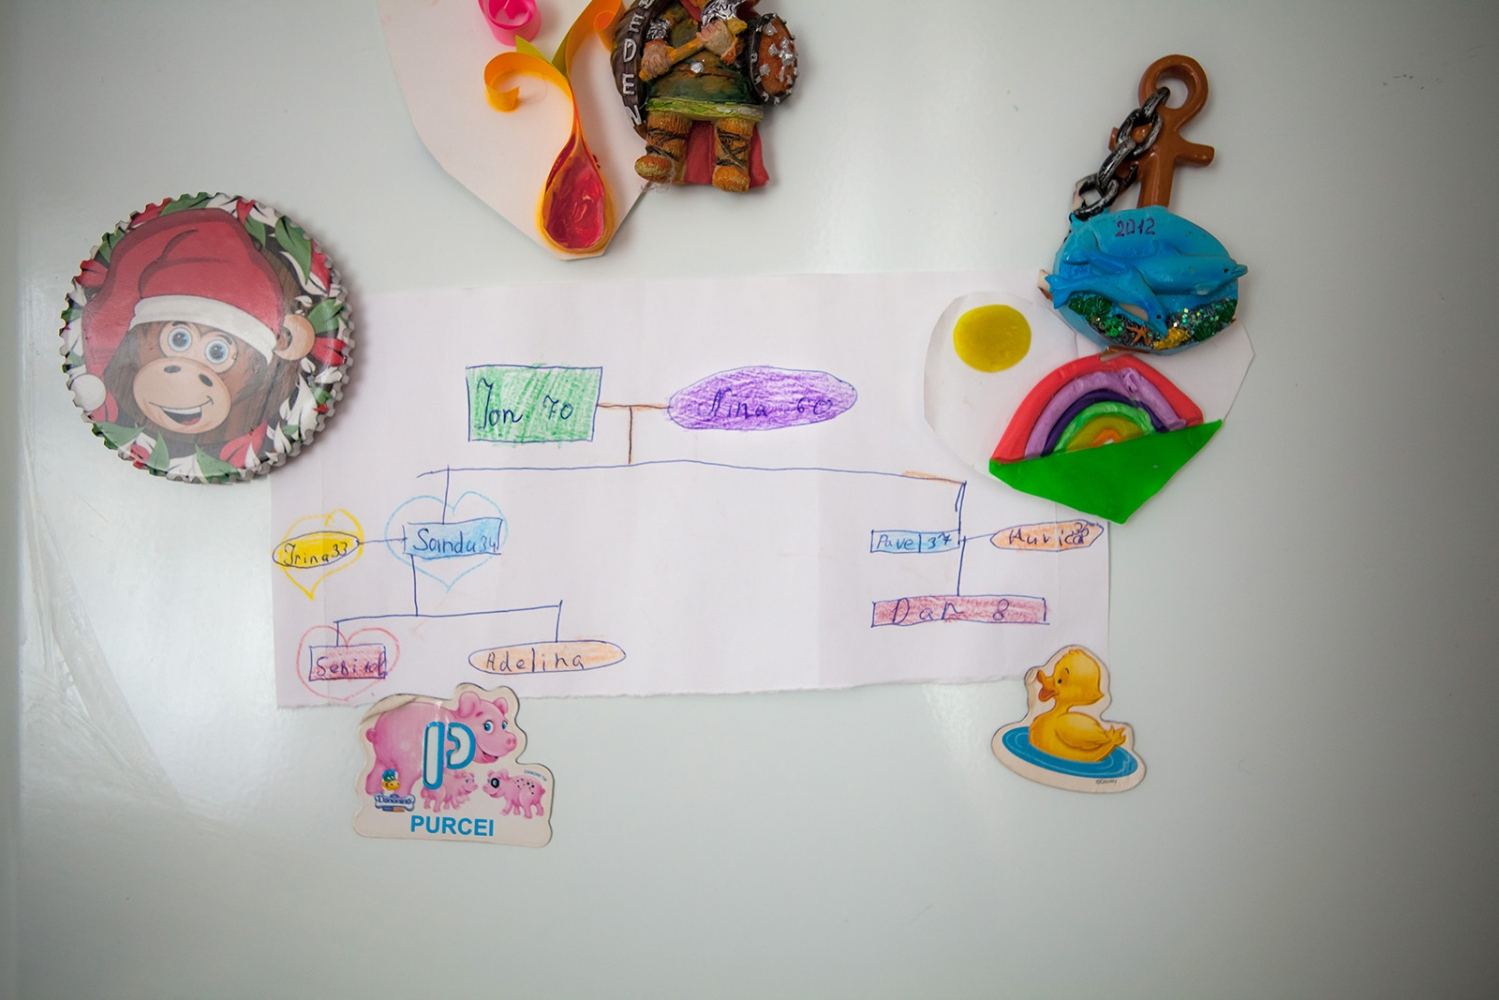 Ion and Nina have hung a family tree made by their grandchildren on their refrigerator, which is held up, in part, by handmade gifts. Many deportees talk about how, despite the hardship they faced in the past, they are happy with their lives now, in part because they are so close to their families. Ion and Nina's home is filled with their children, grandchildren, brothers, nieces and nephews everyday. I am struck by the tenacity of the human spirit in the face of seemingly insurmountable hardship. No matter what the odds, life will go on and thrive. People will survive and love again.